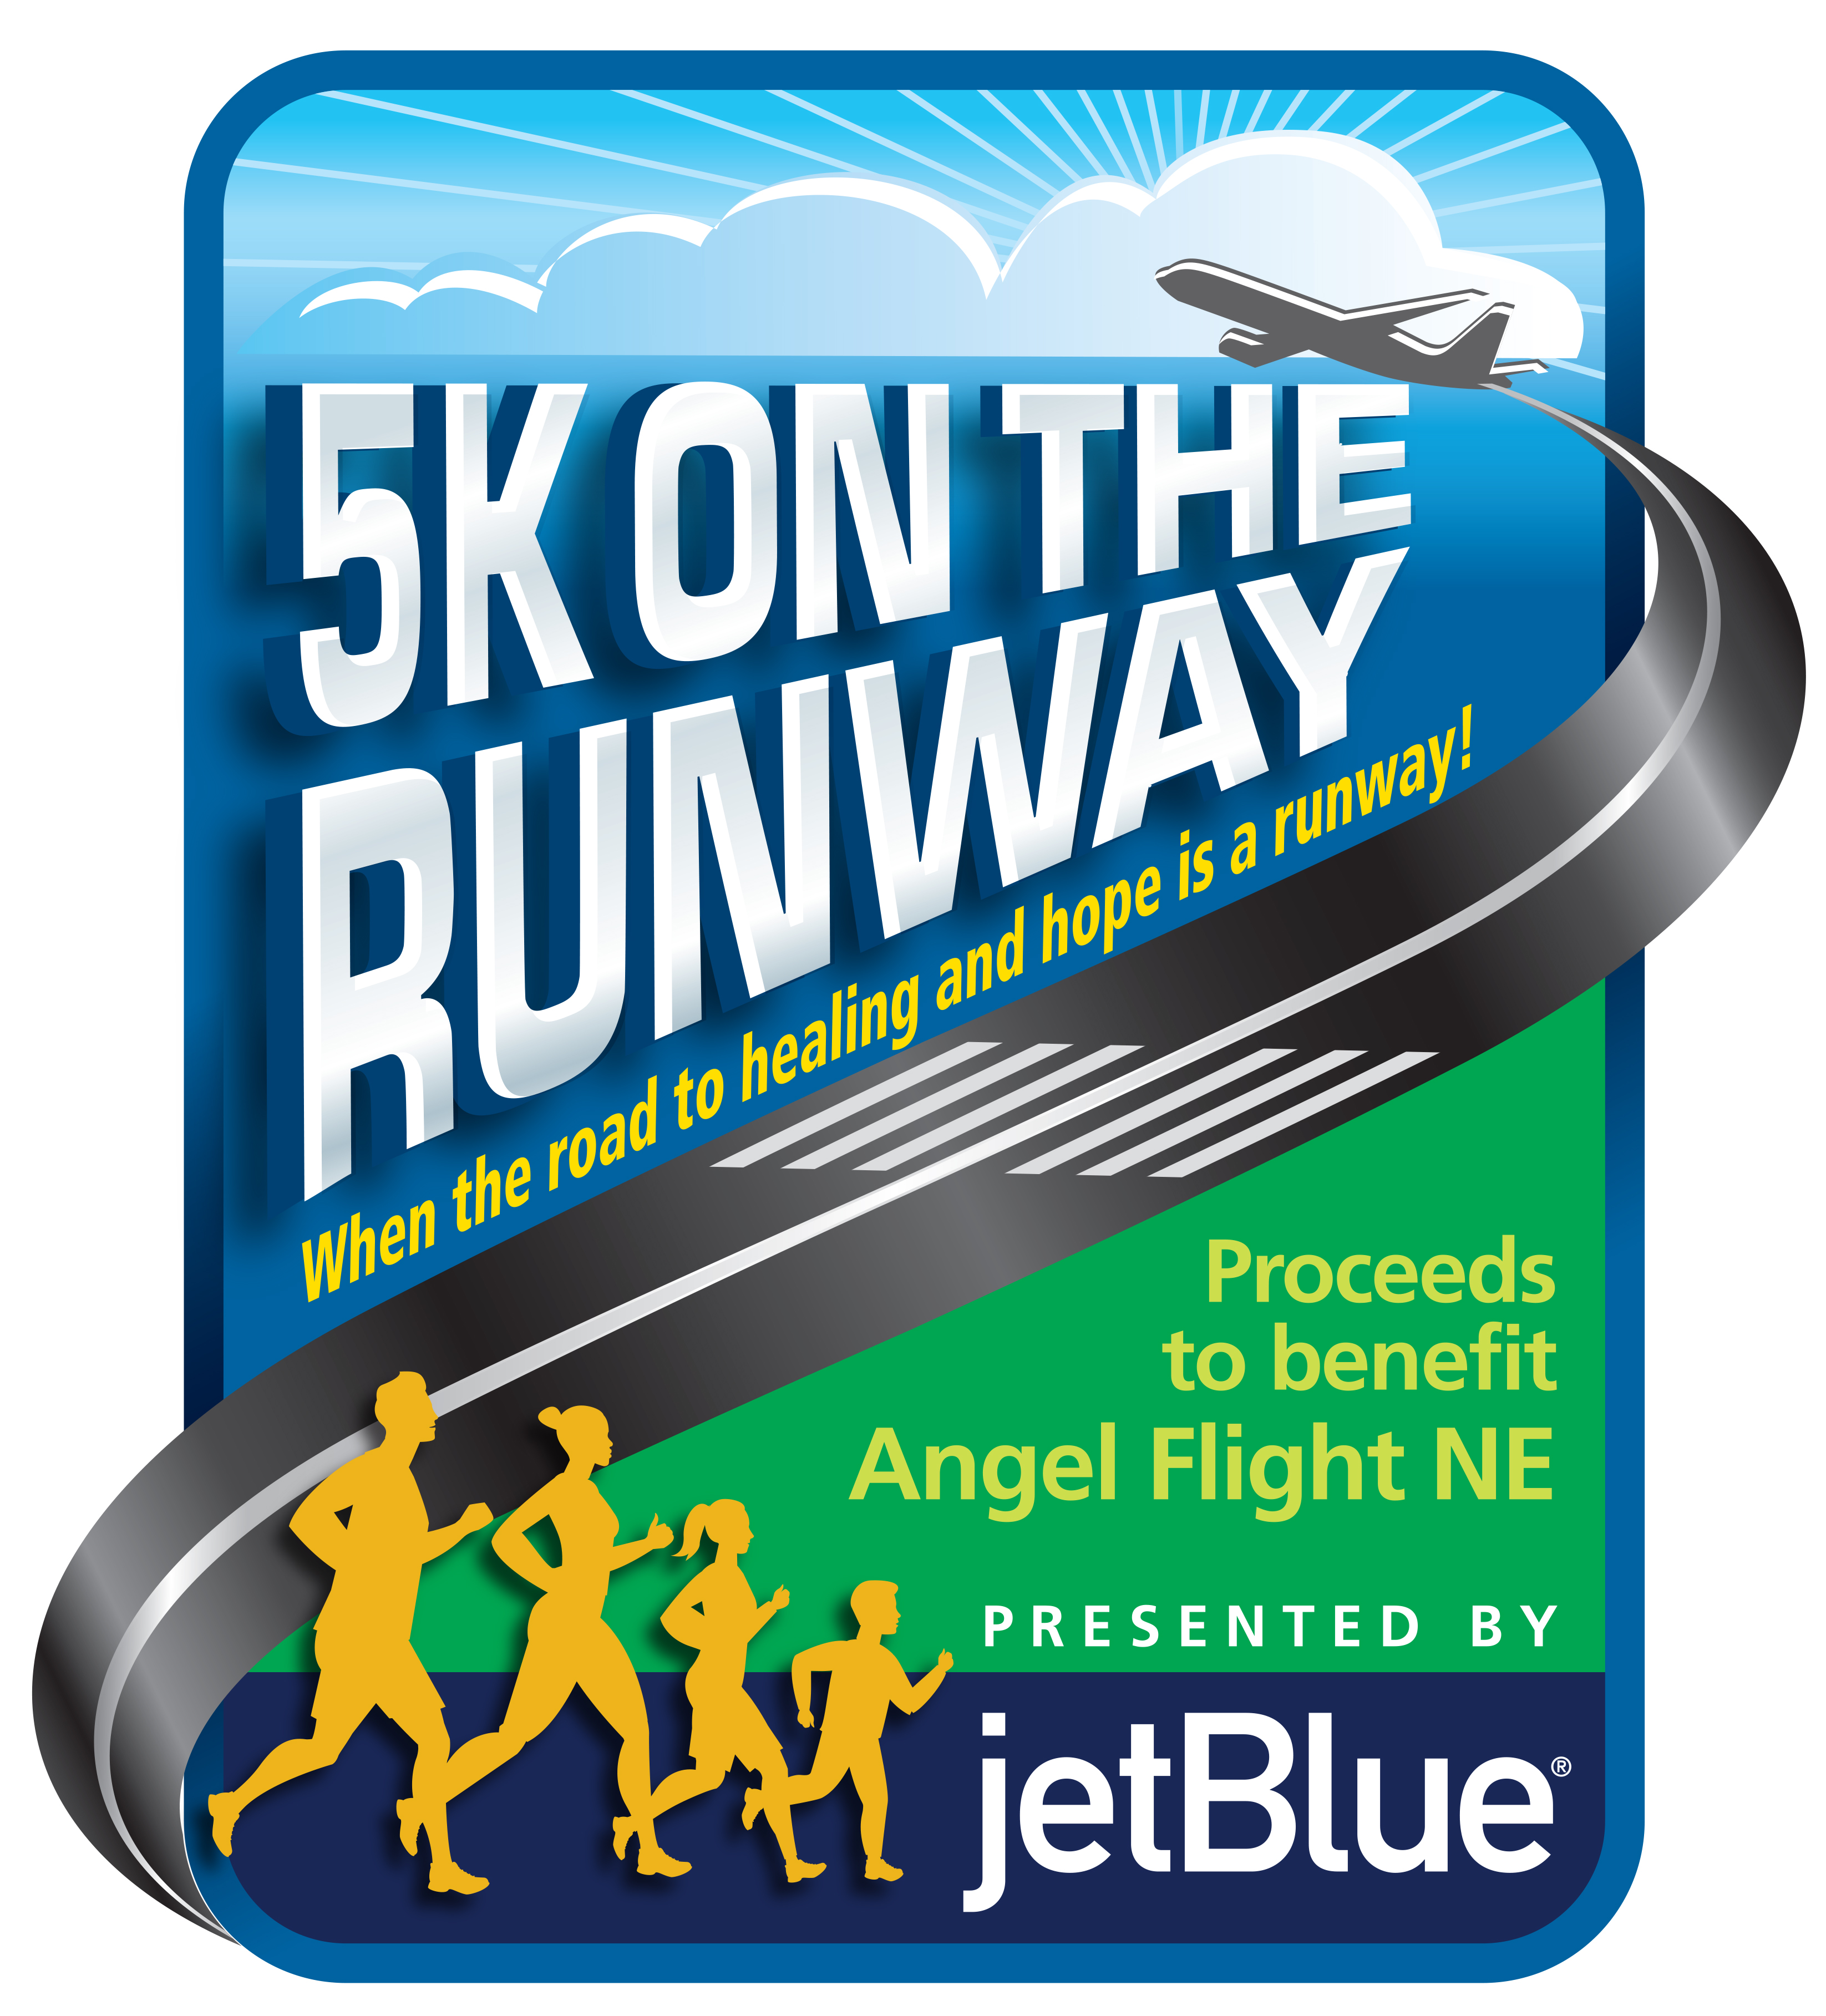 Angel Flight NE Holding First Annual 5K on the Runway Presented by JetBlue at Logan International Airport Boston on May 3